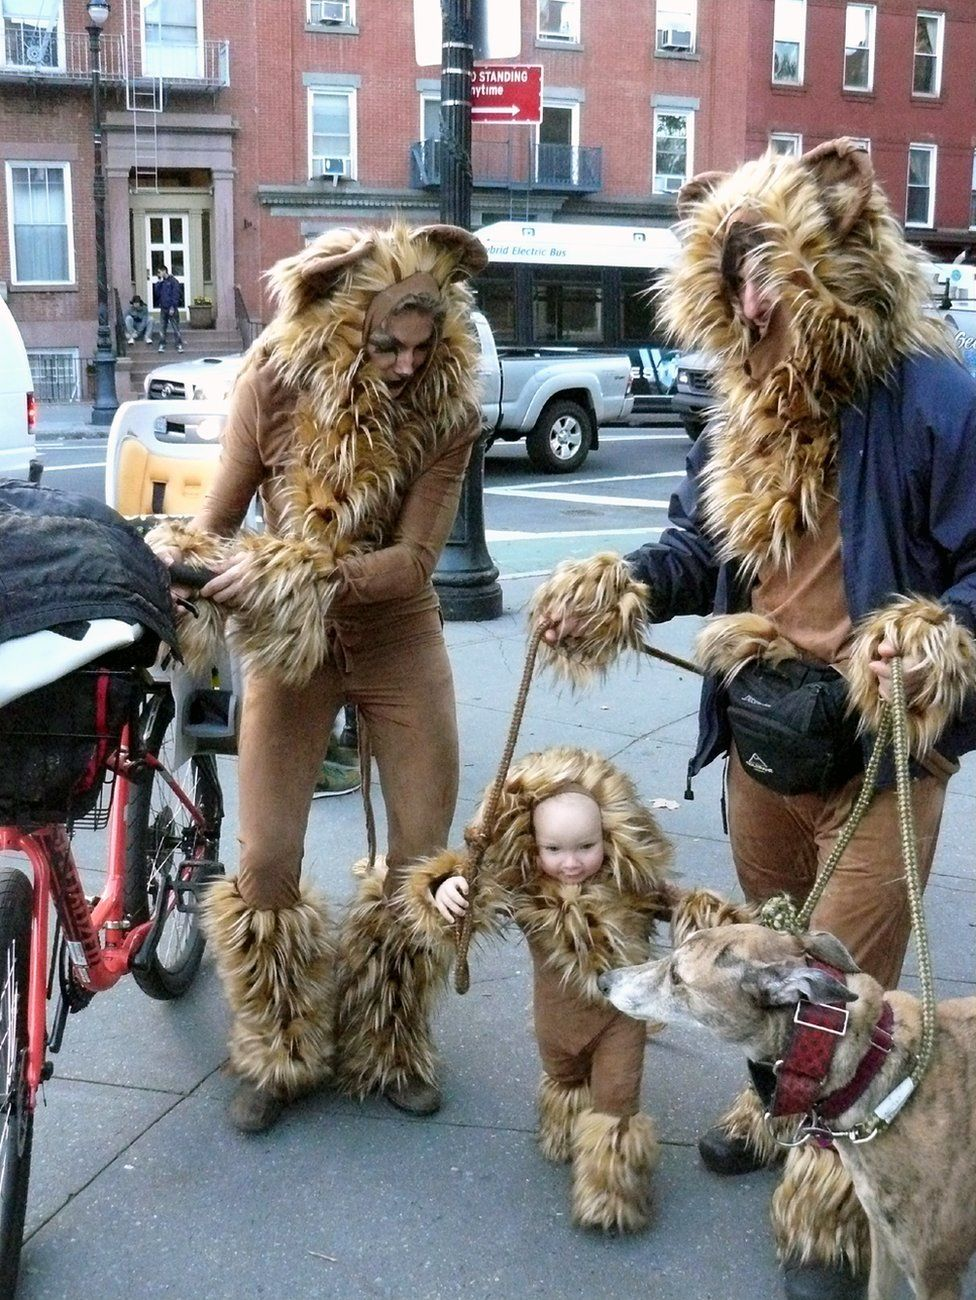 A family dressed as lions are seen in the street